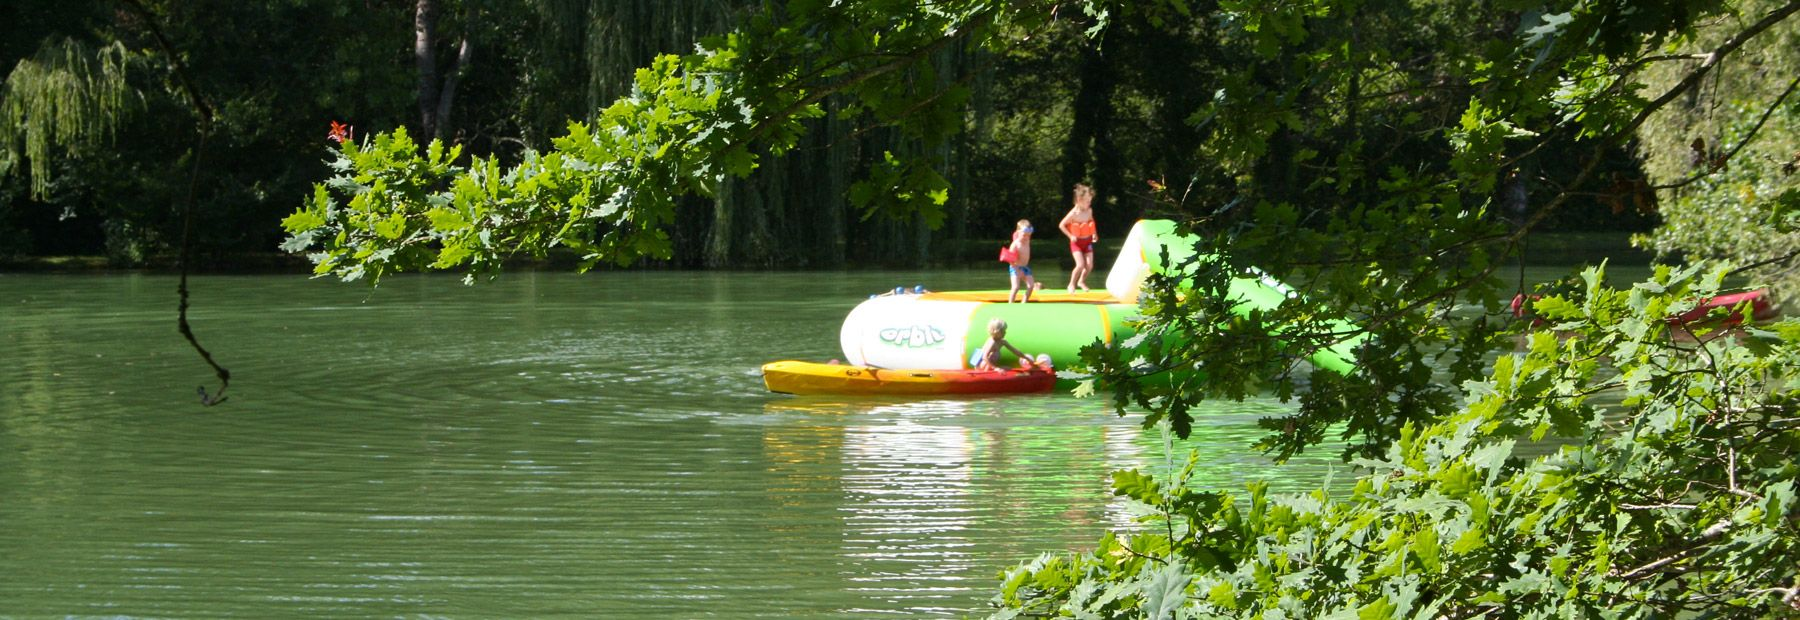 Camping dordogne p che tang cano lac les valades for Camping avec lac et piscine